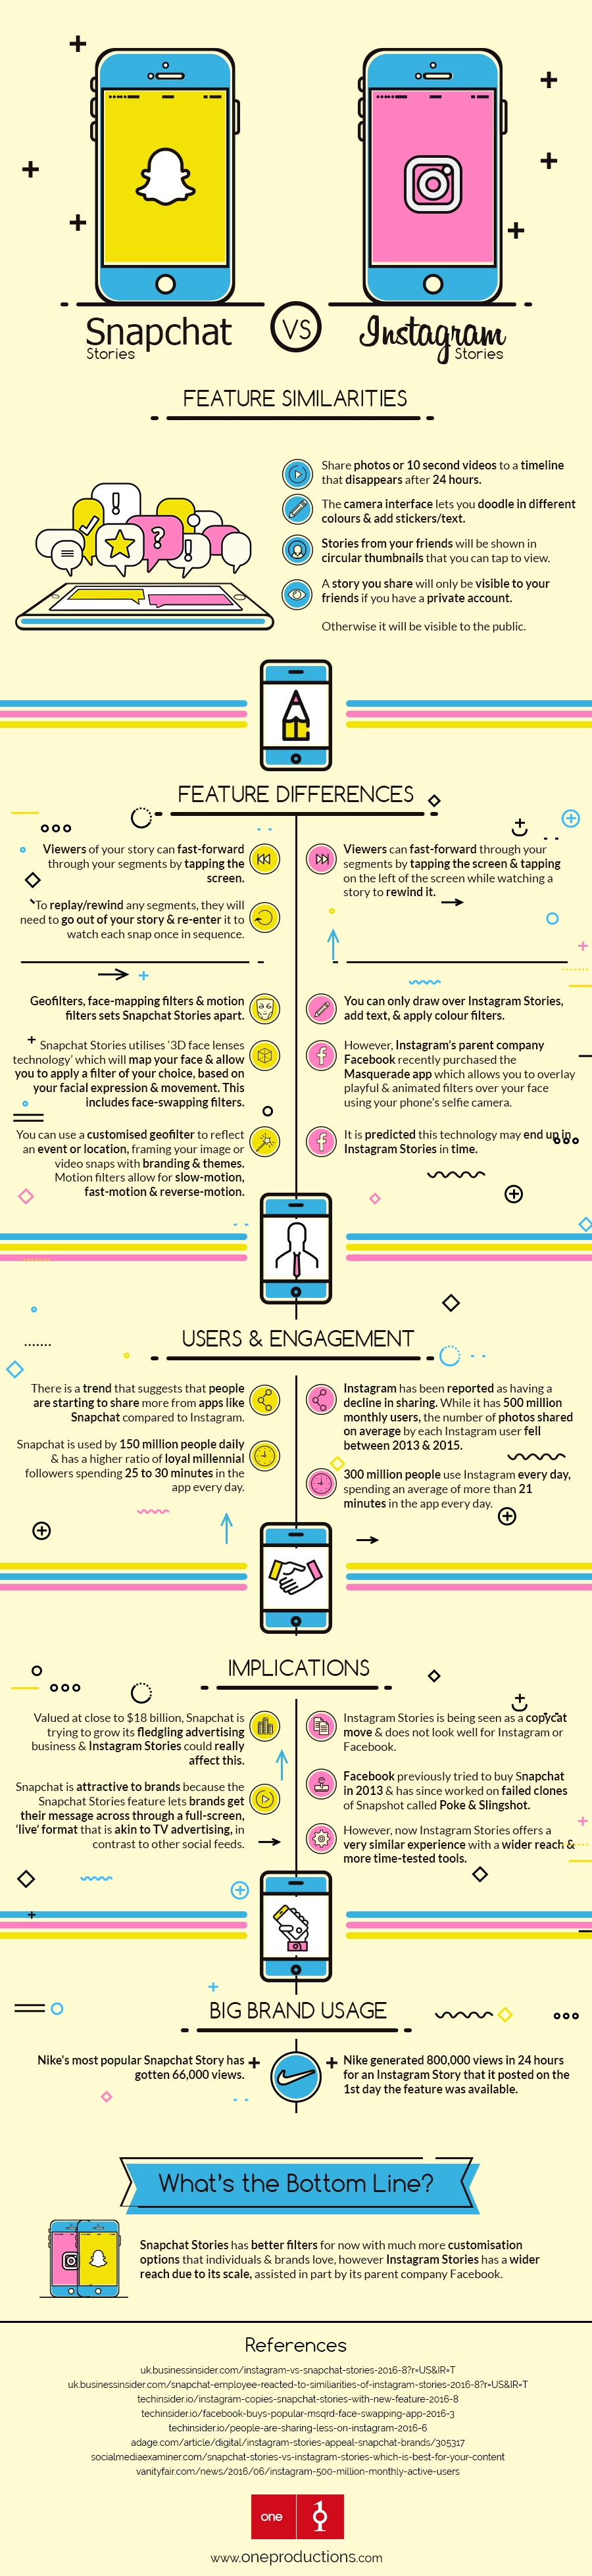 Which Is Better? Instagram vs Snapchat [INFOGRAPHIC]